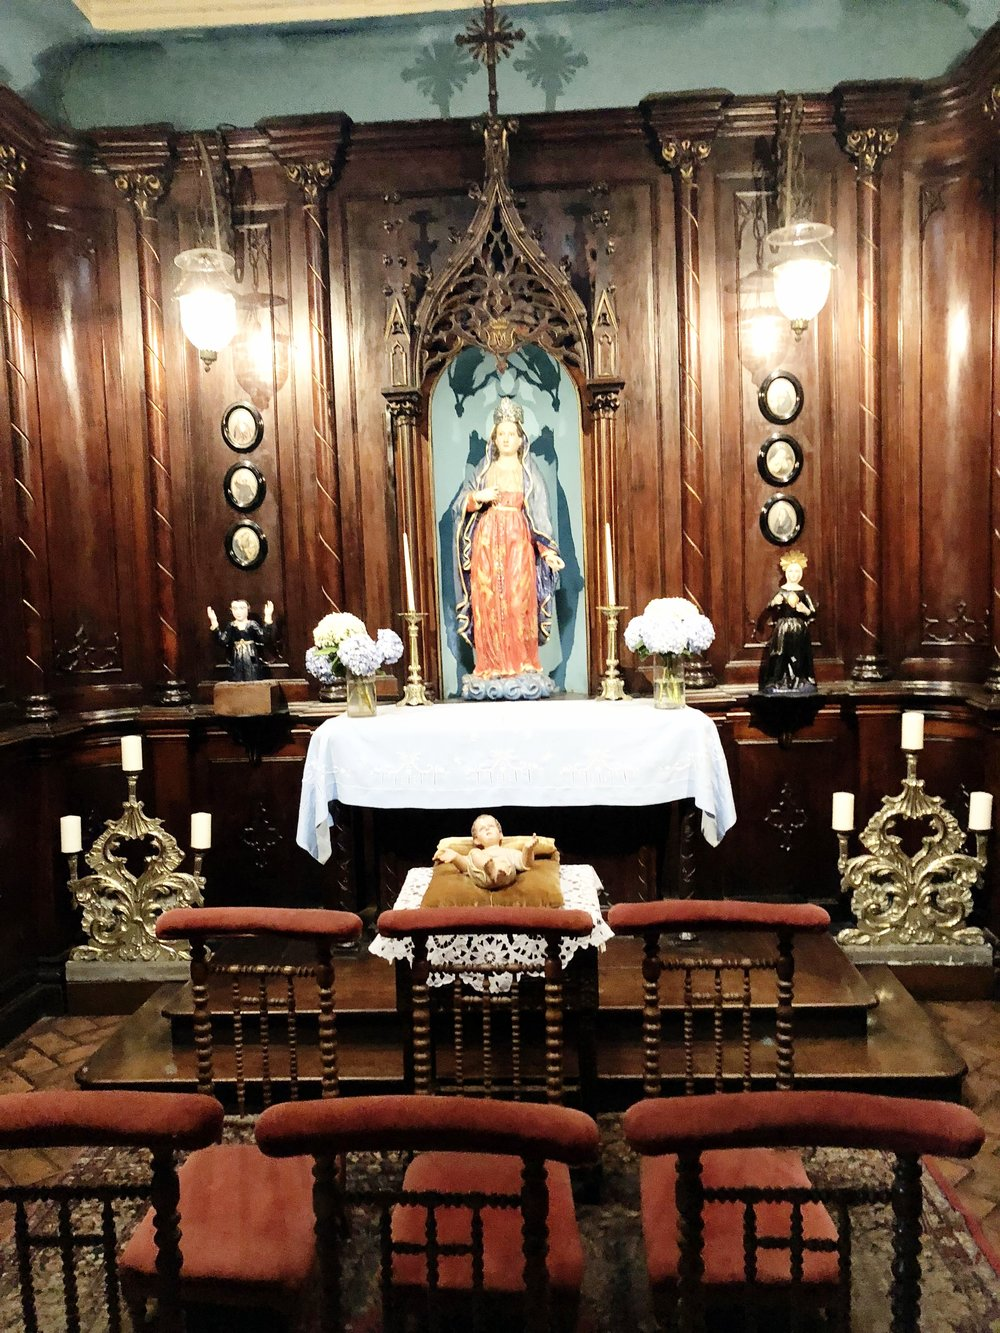 The Aliaga Family Chapel